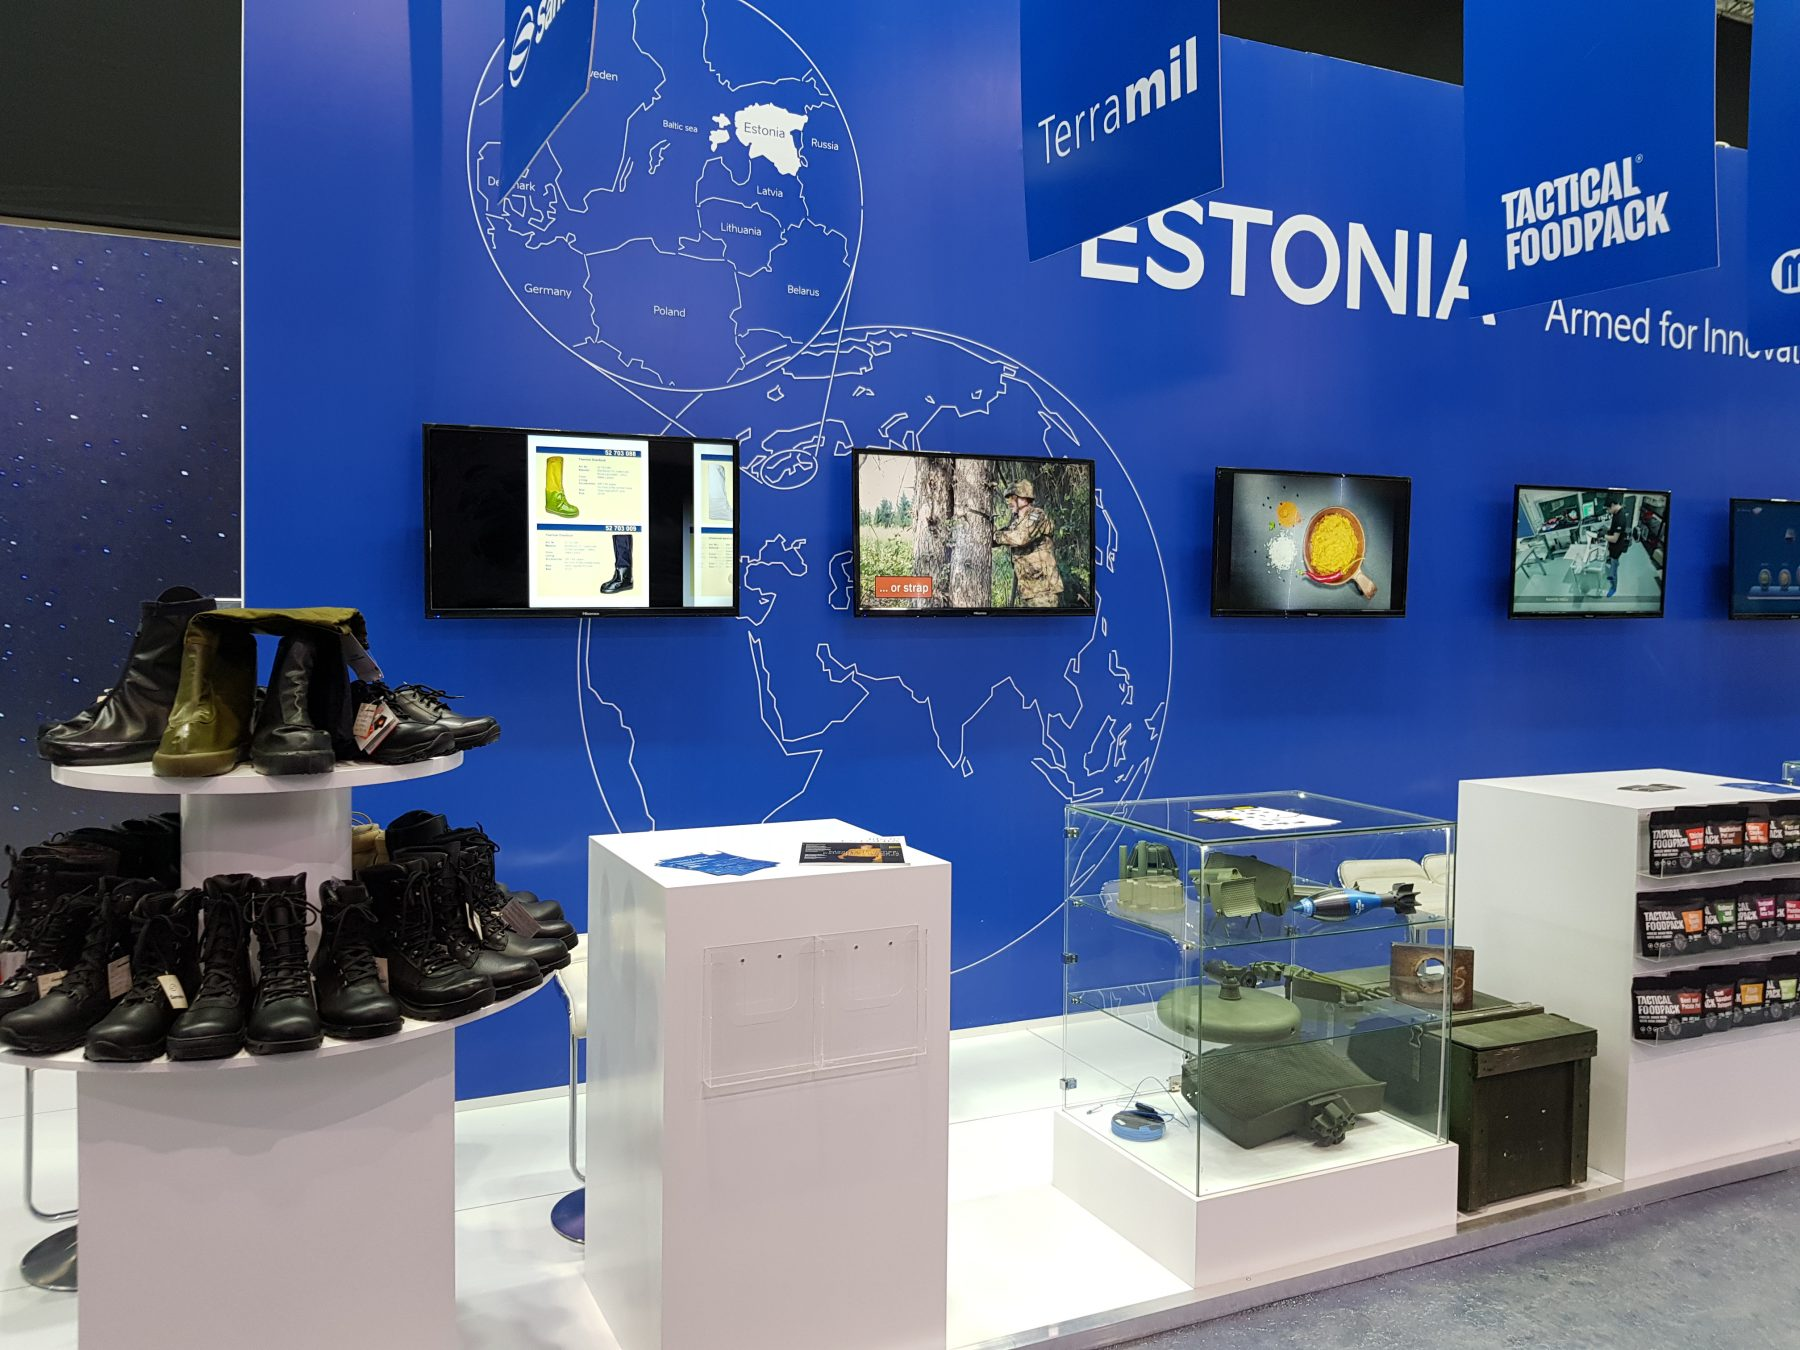 Expo booth with small military equipment